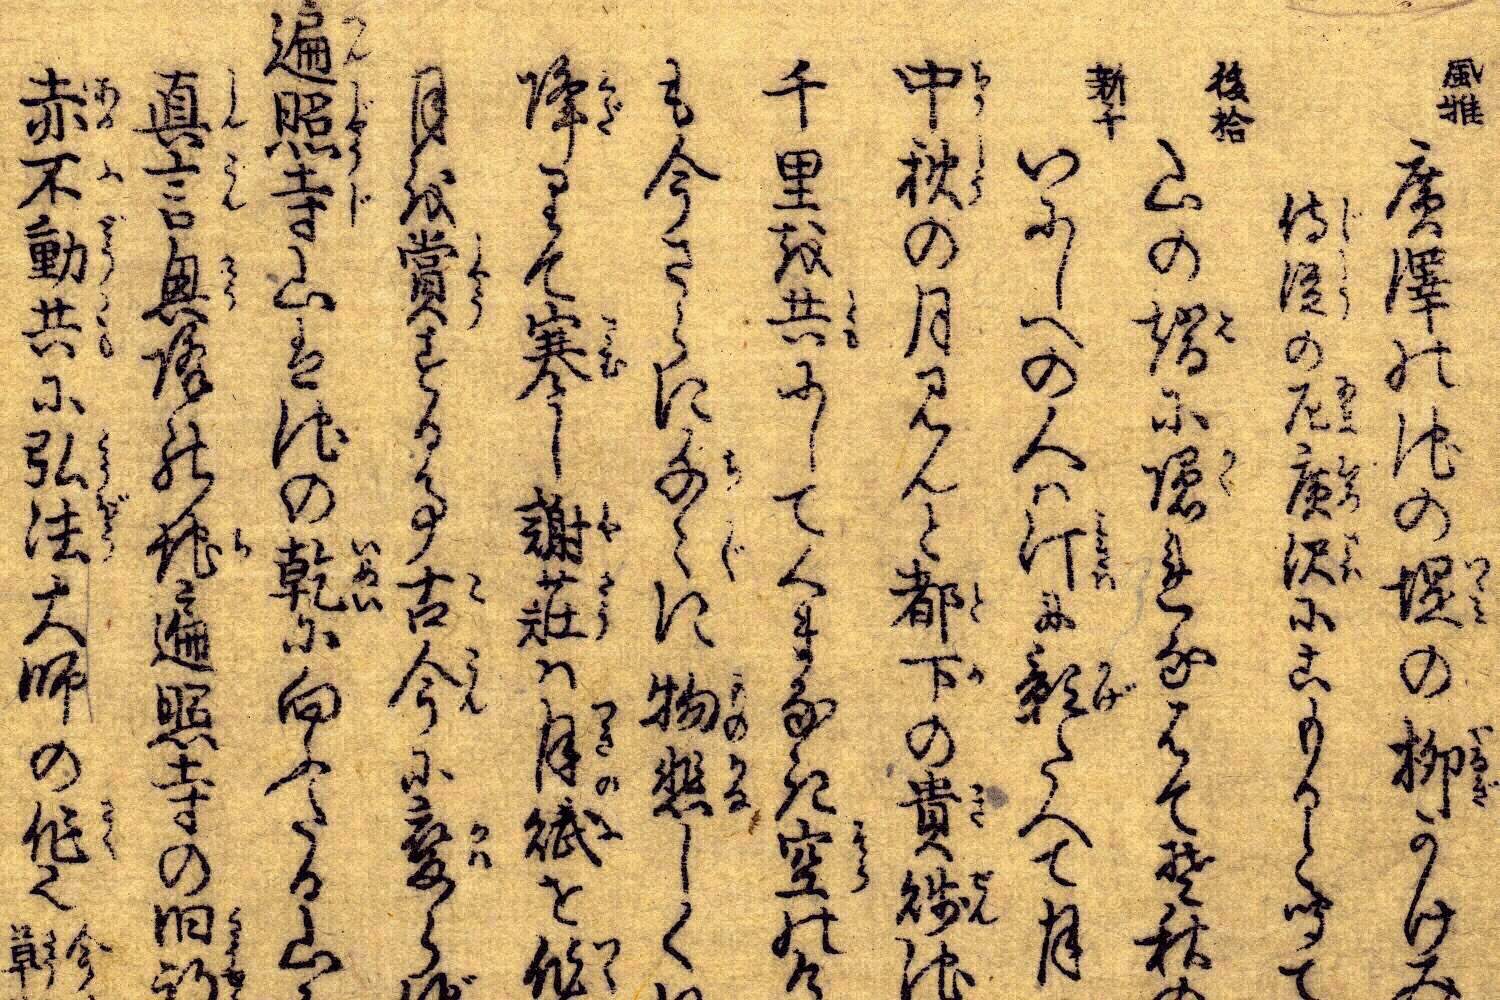 old Japanese text in kanji